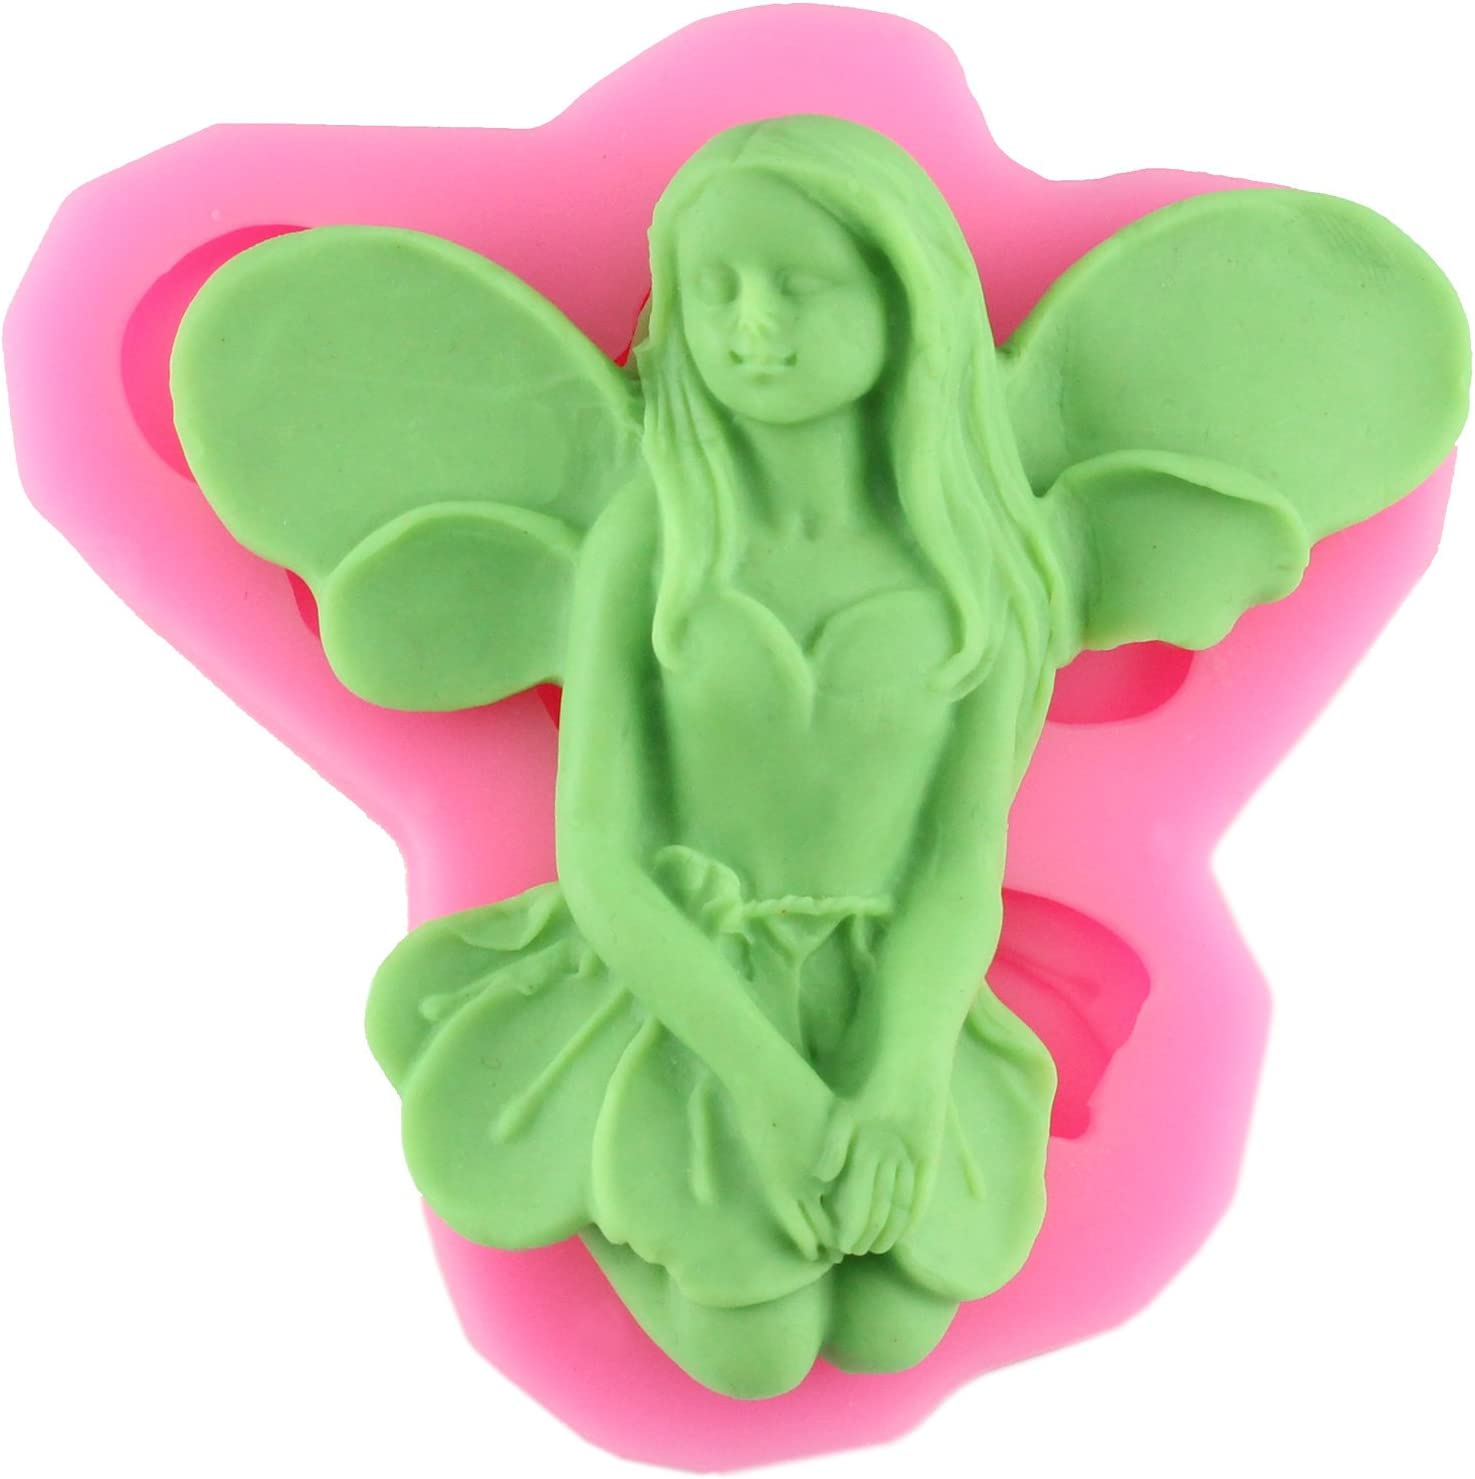 Mujiang Angel Fairy Silicone Mold Making Fimo Candy Fondant Sugar Craft Gumpaste Cake Decorating Clay